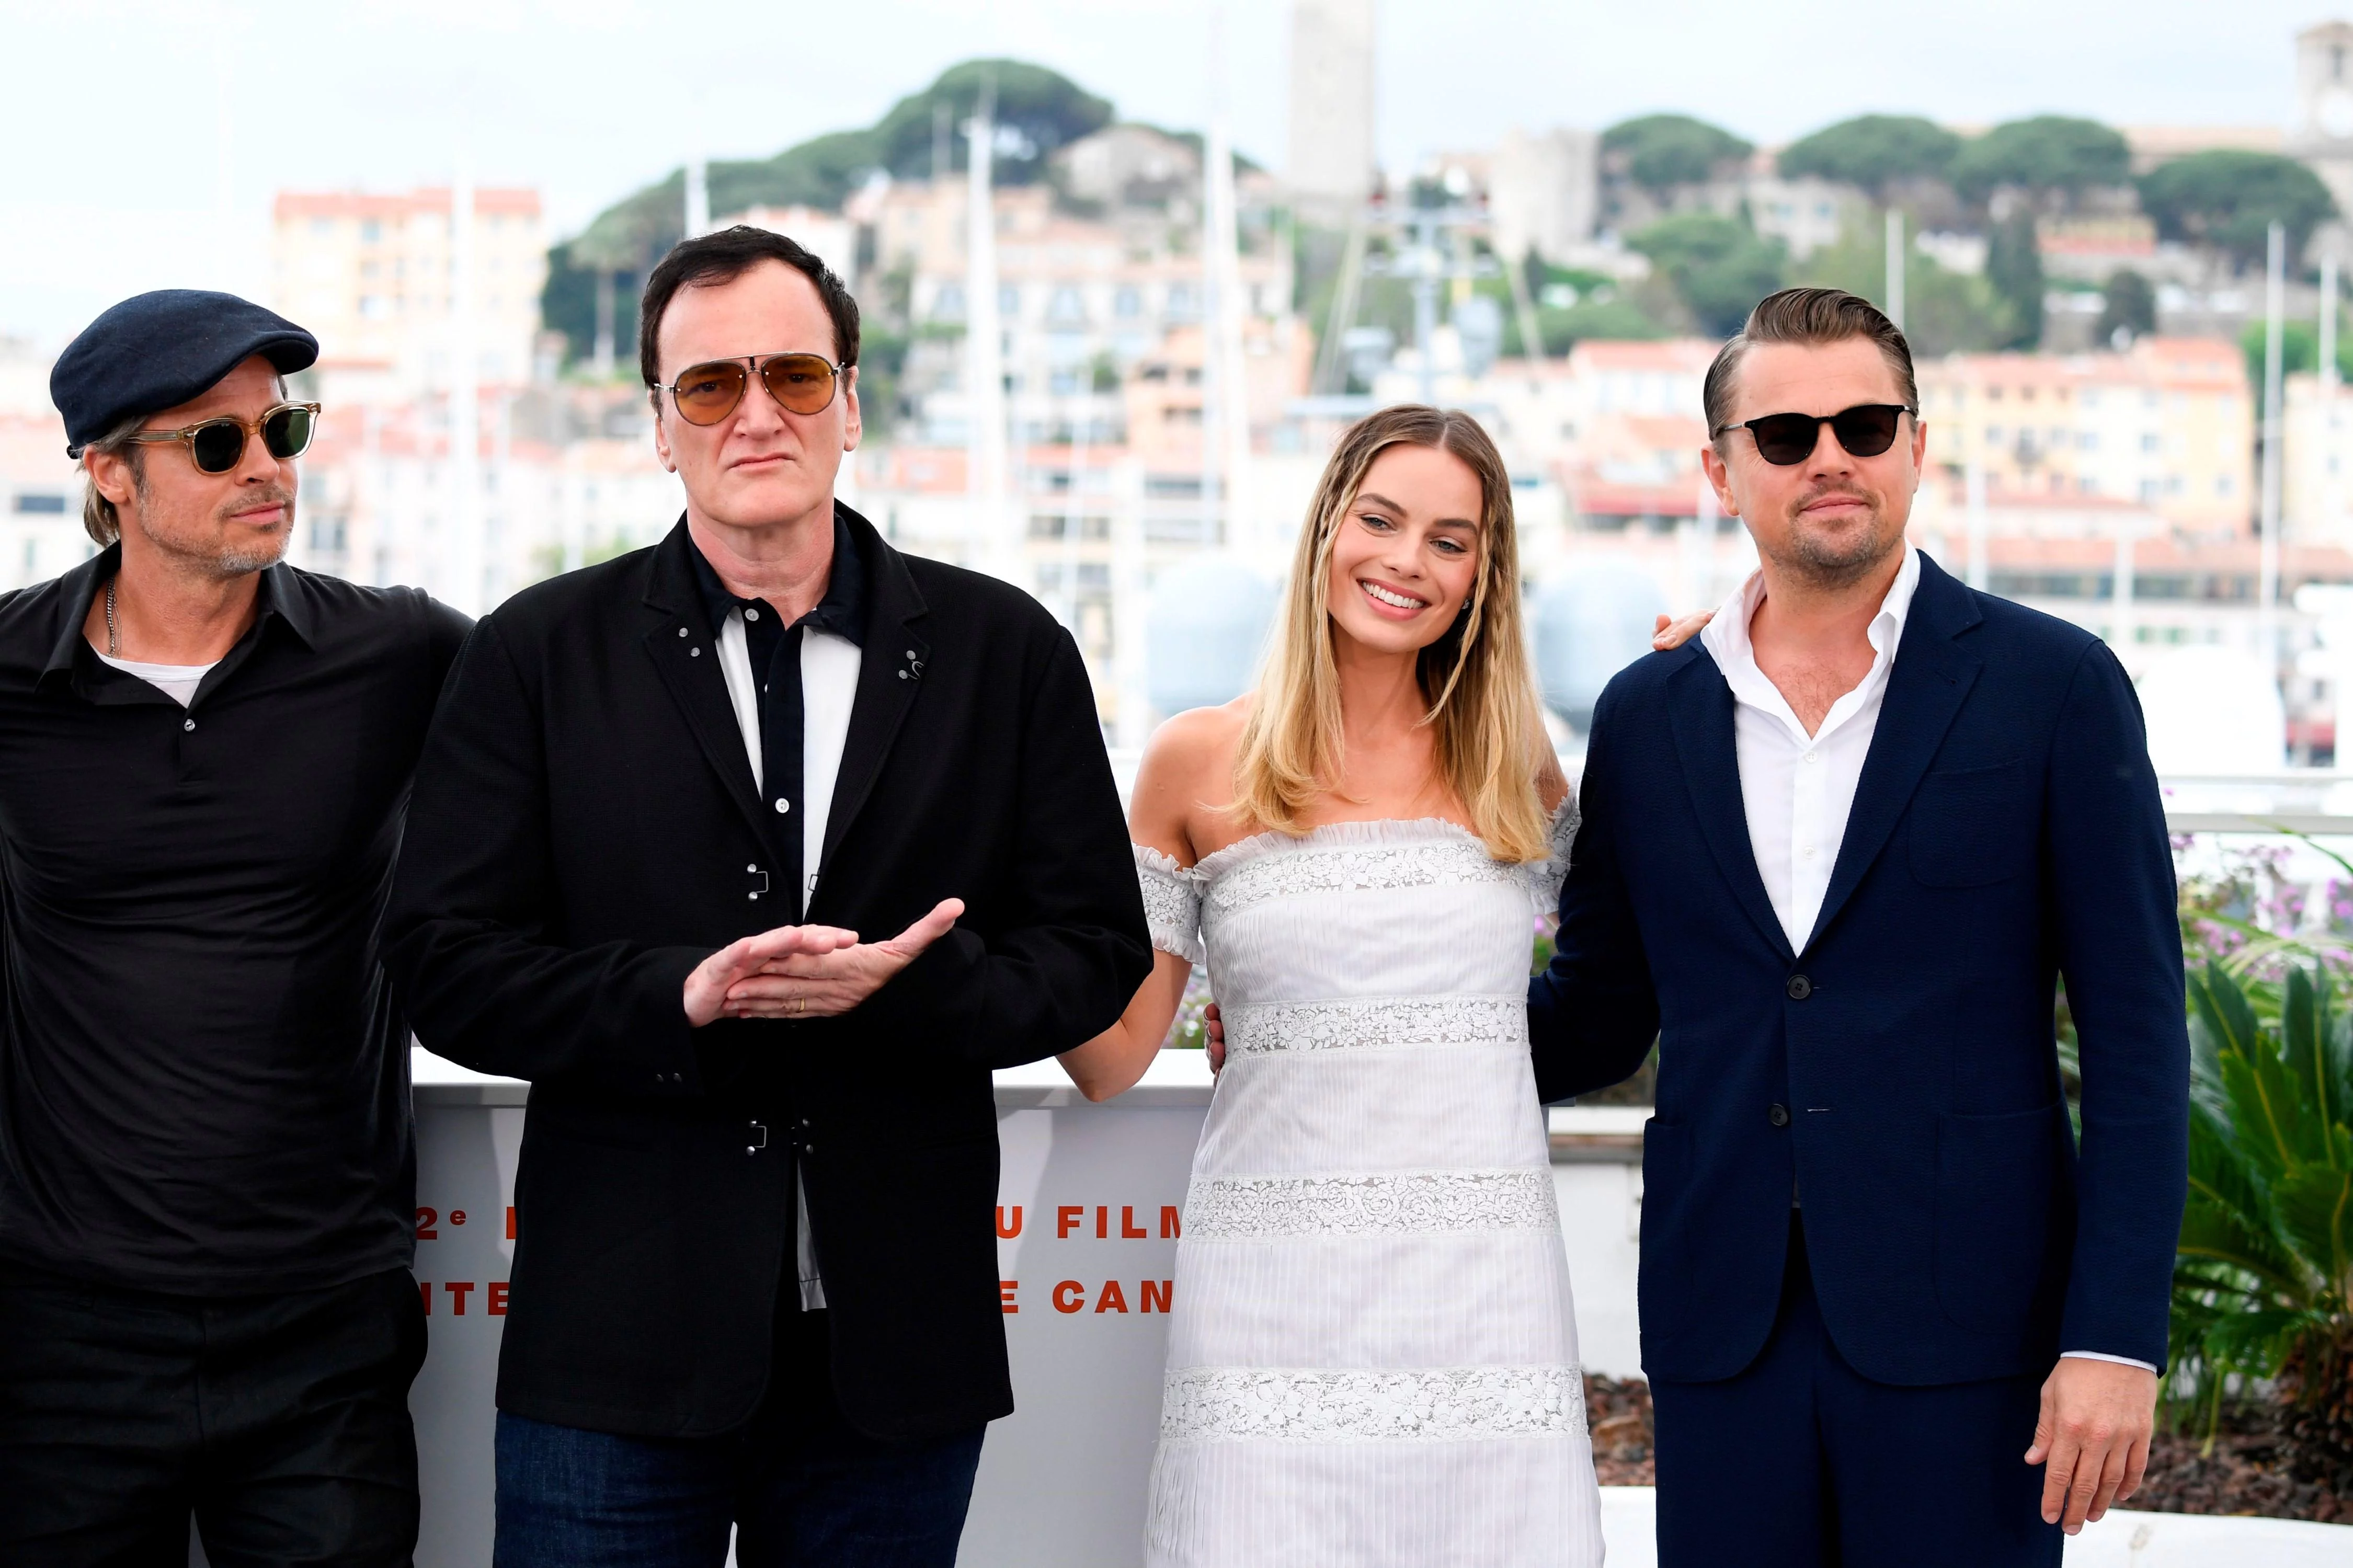 Once Upon a Time in Hollywood de Tarantino conquista Cannes y la crítica